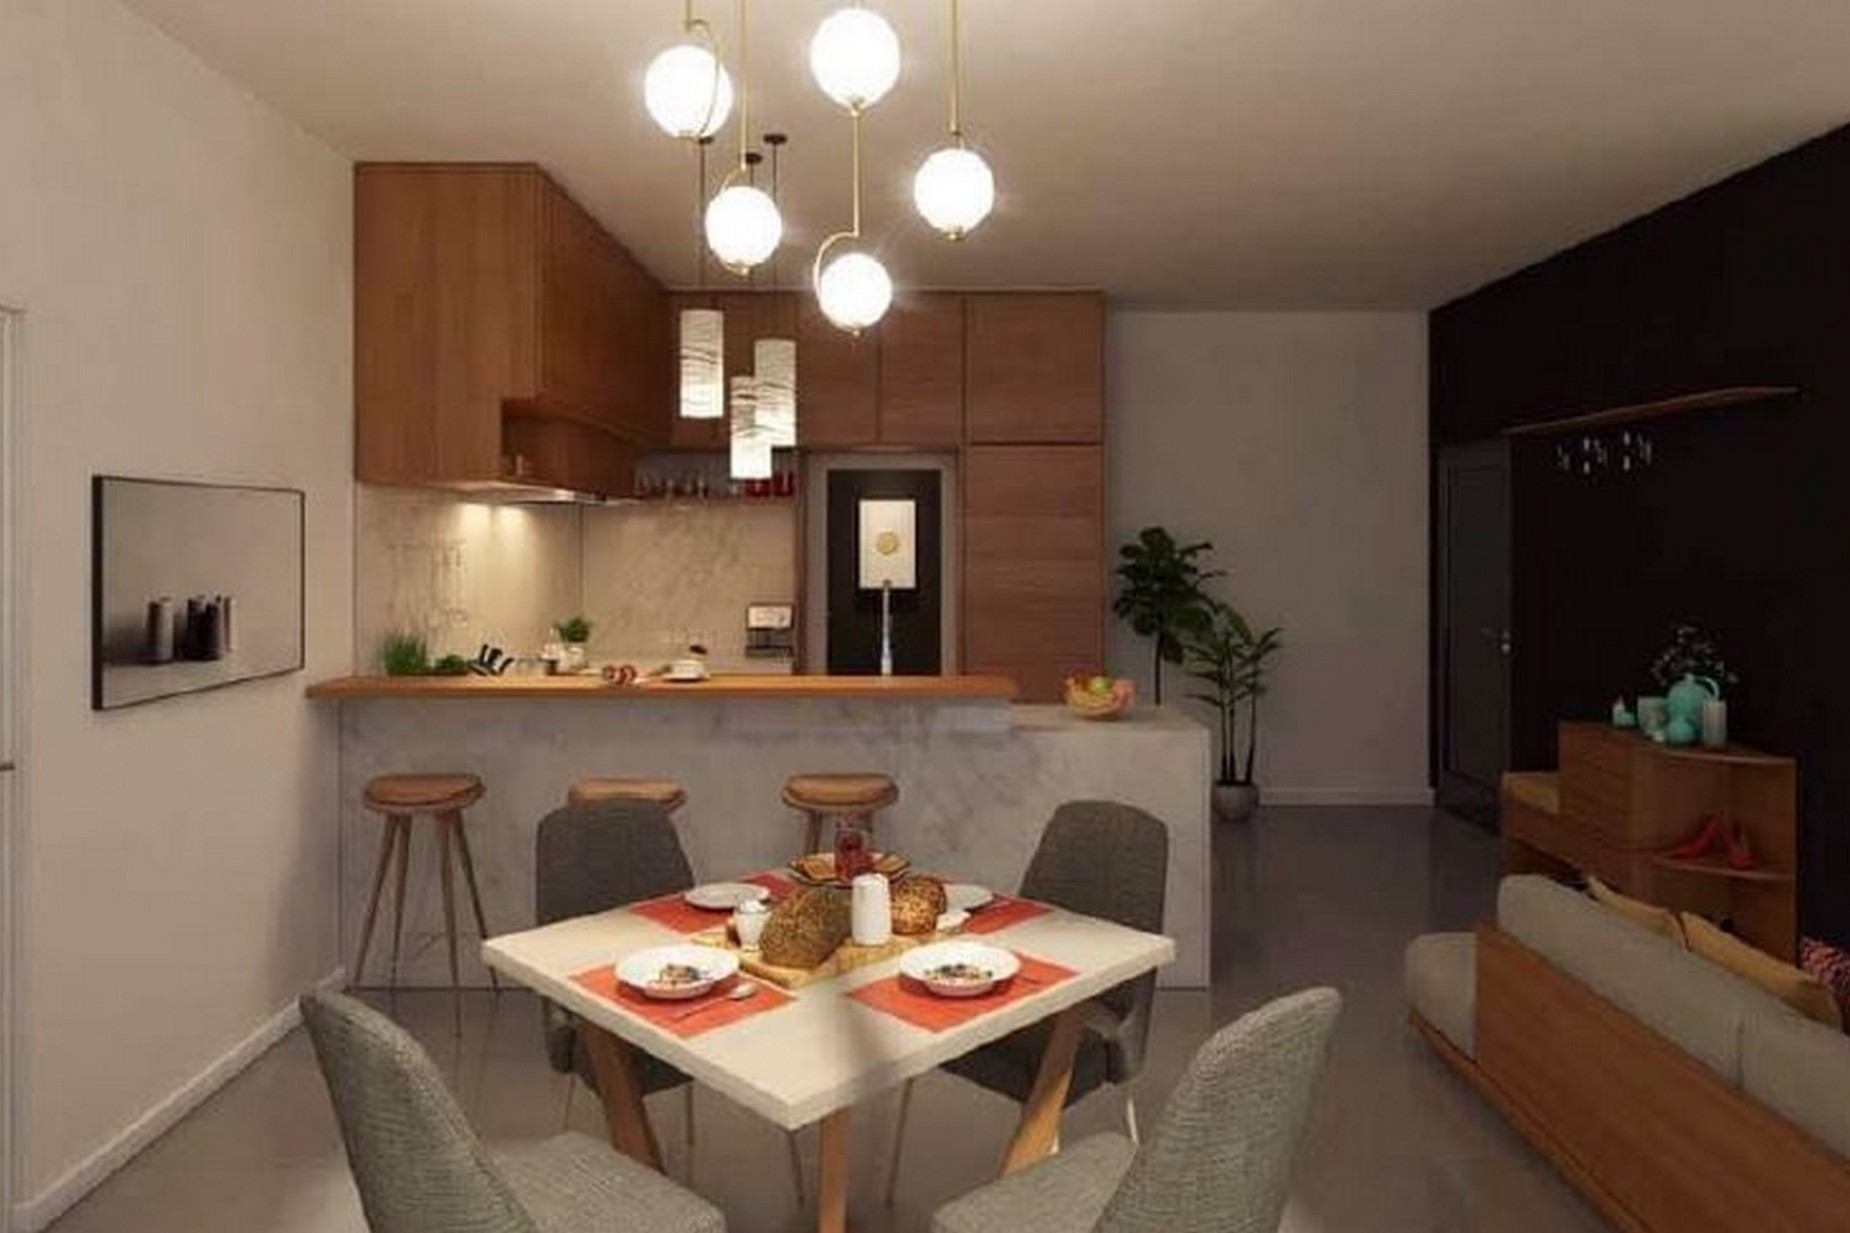 3 bed Apartment For Sale in Dingli, Dingli - thumb 2